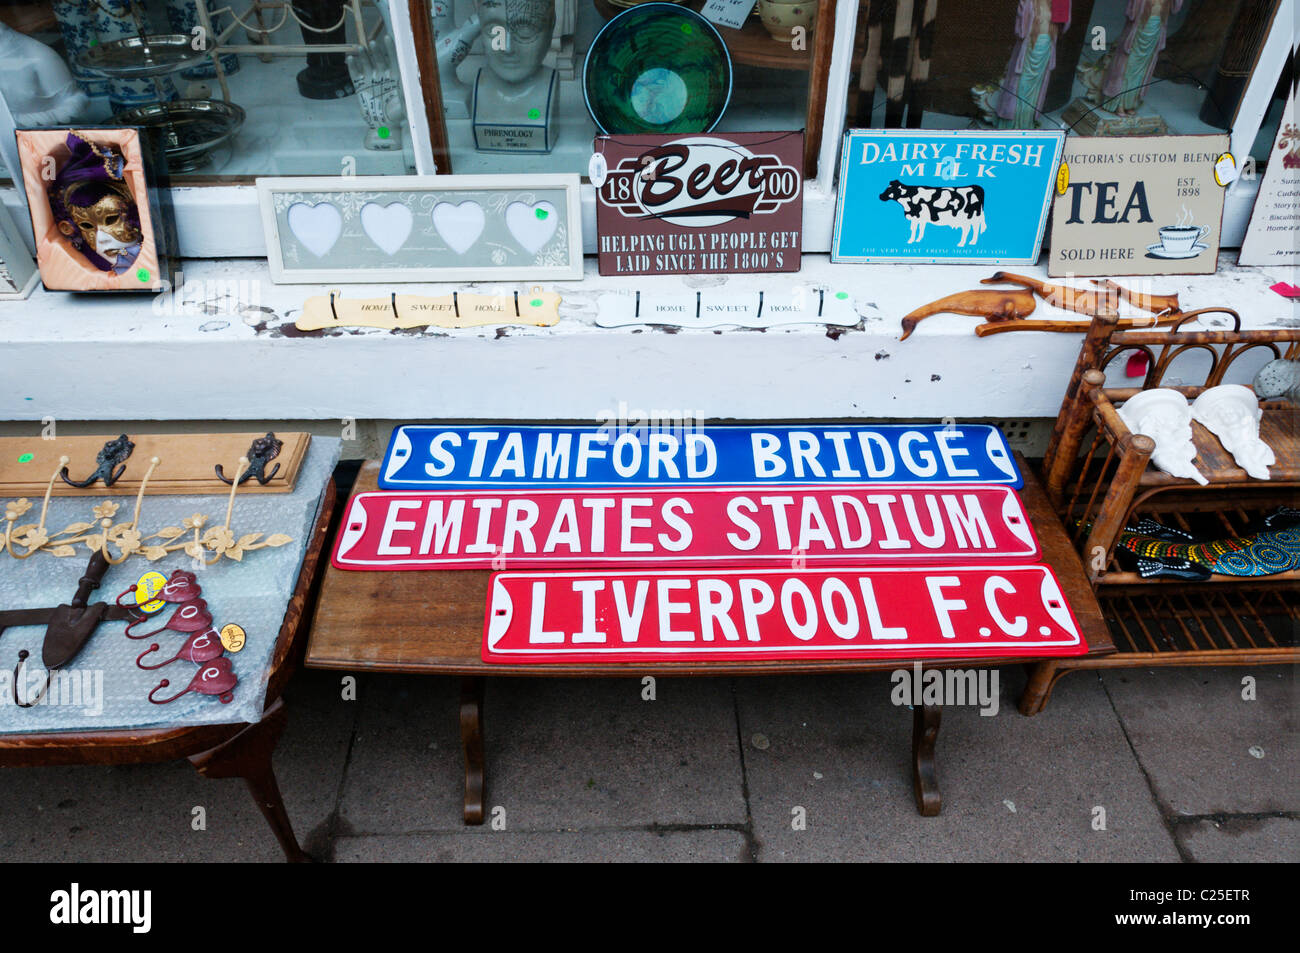 Reproduction football ground nameplates for sale as souvenirs together with old advertising signs in a junk shop - Stock Image